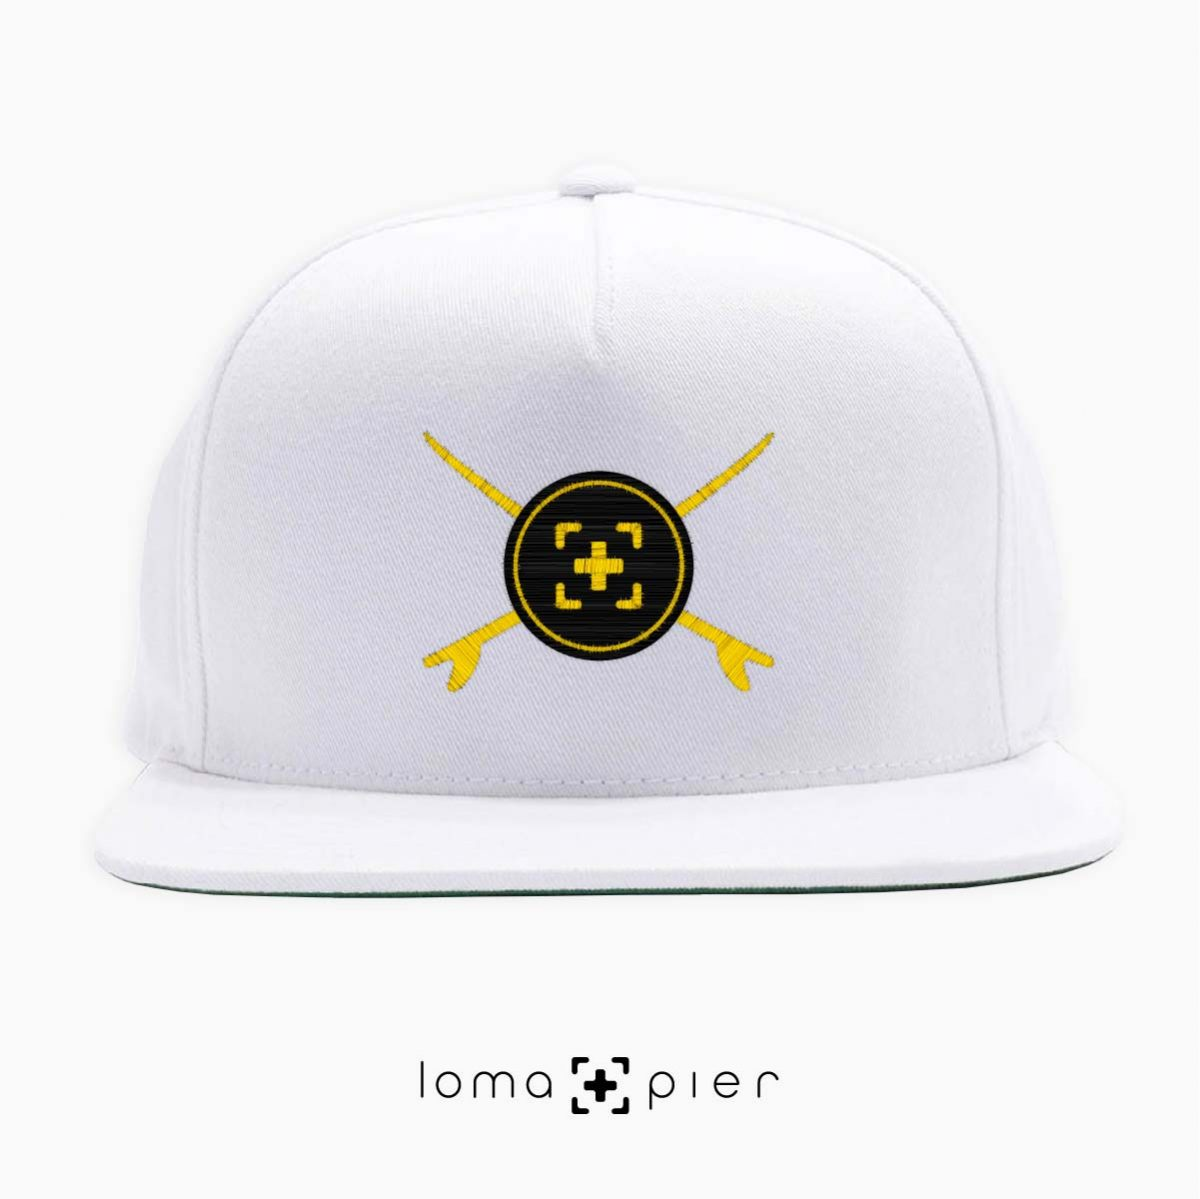 SURFERS BADGE hermosa beach snapback hat in white by lomapier hat store